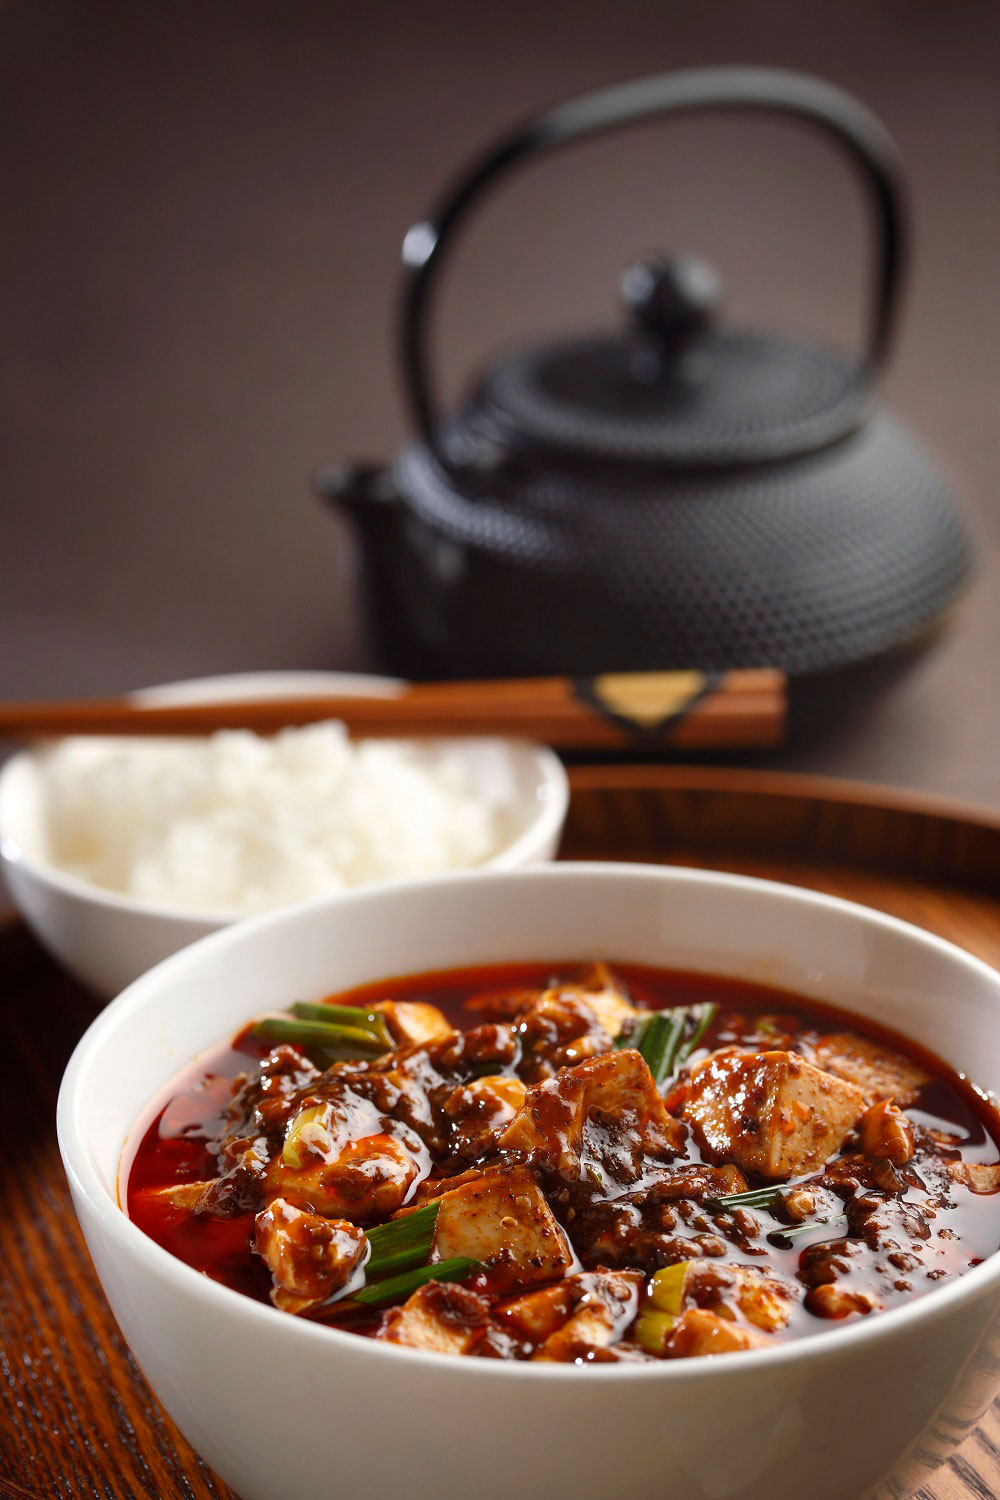 Chef Chen Kentaro' signature mapo tofu (Photo: Courtesy of Shisen Hanten)